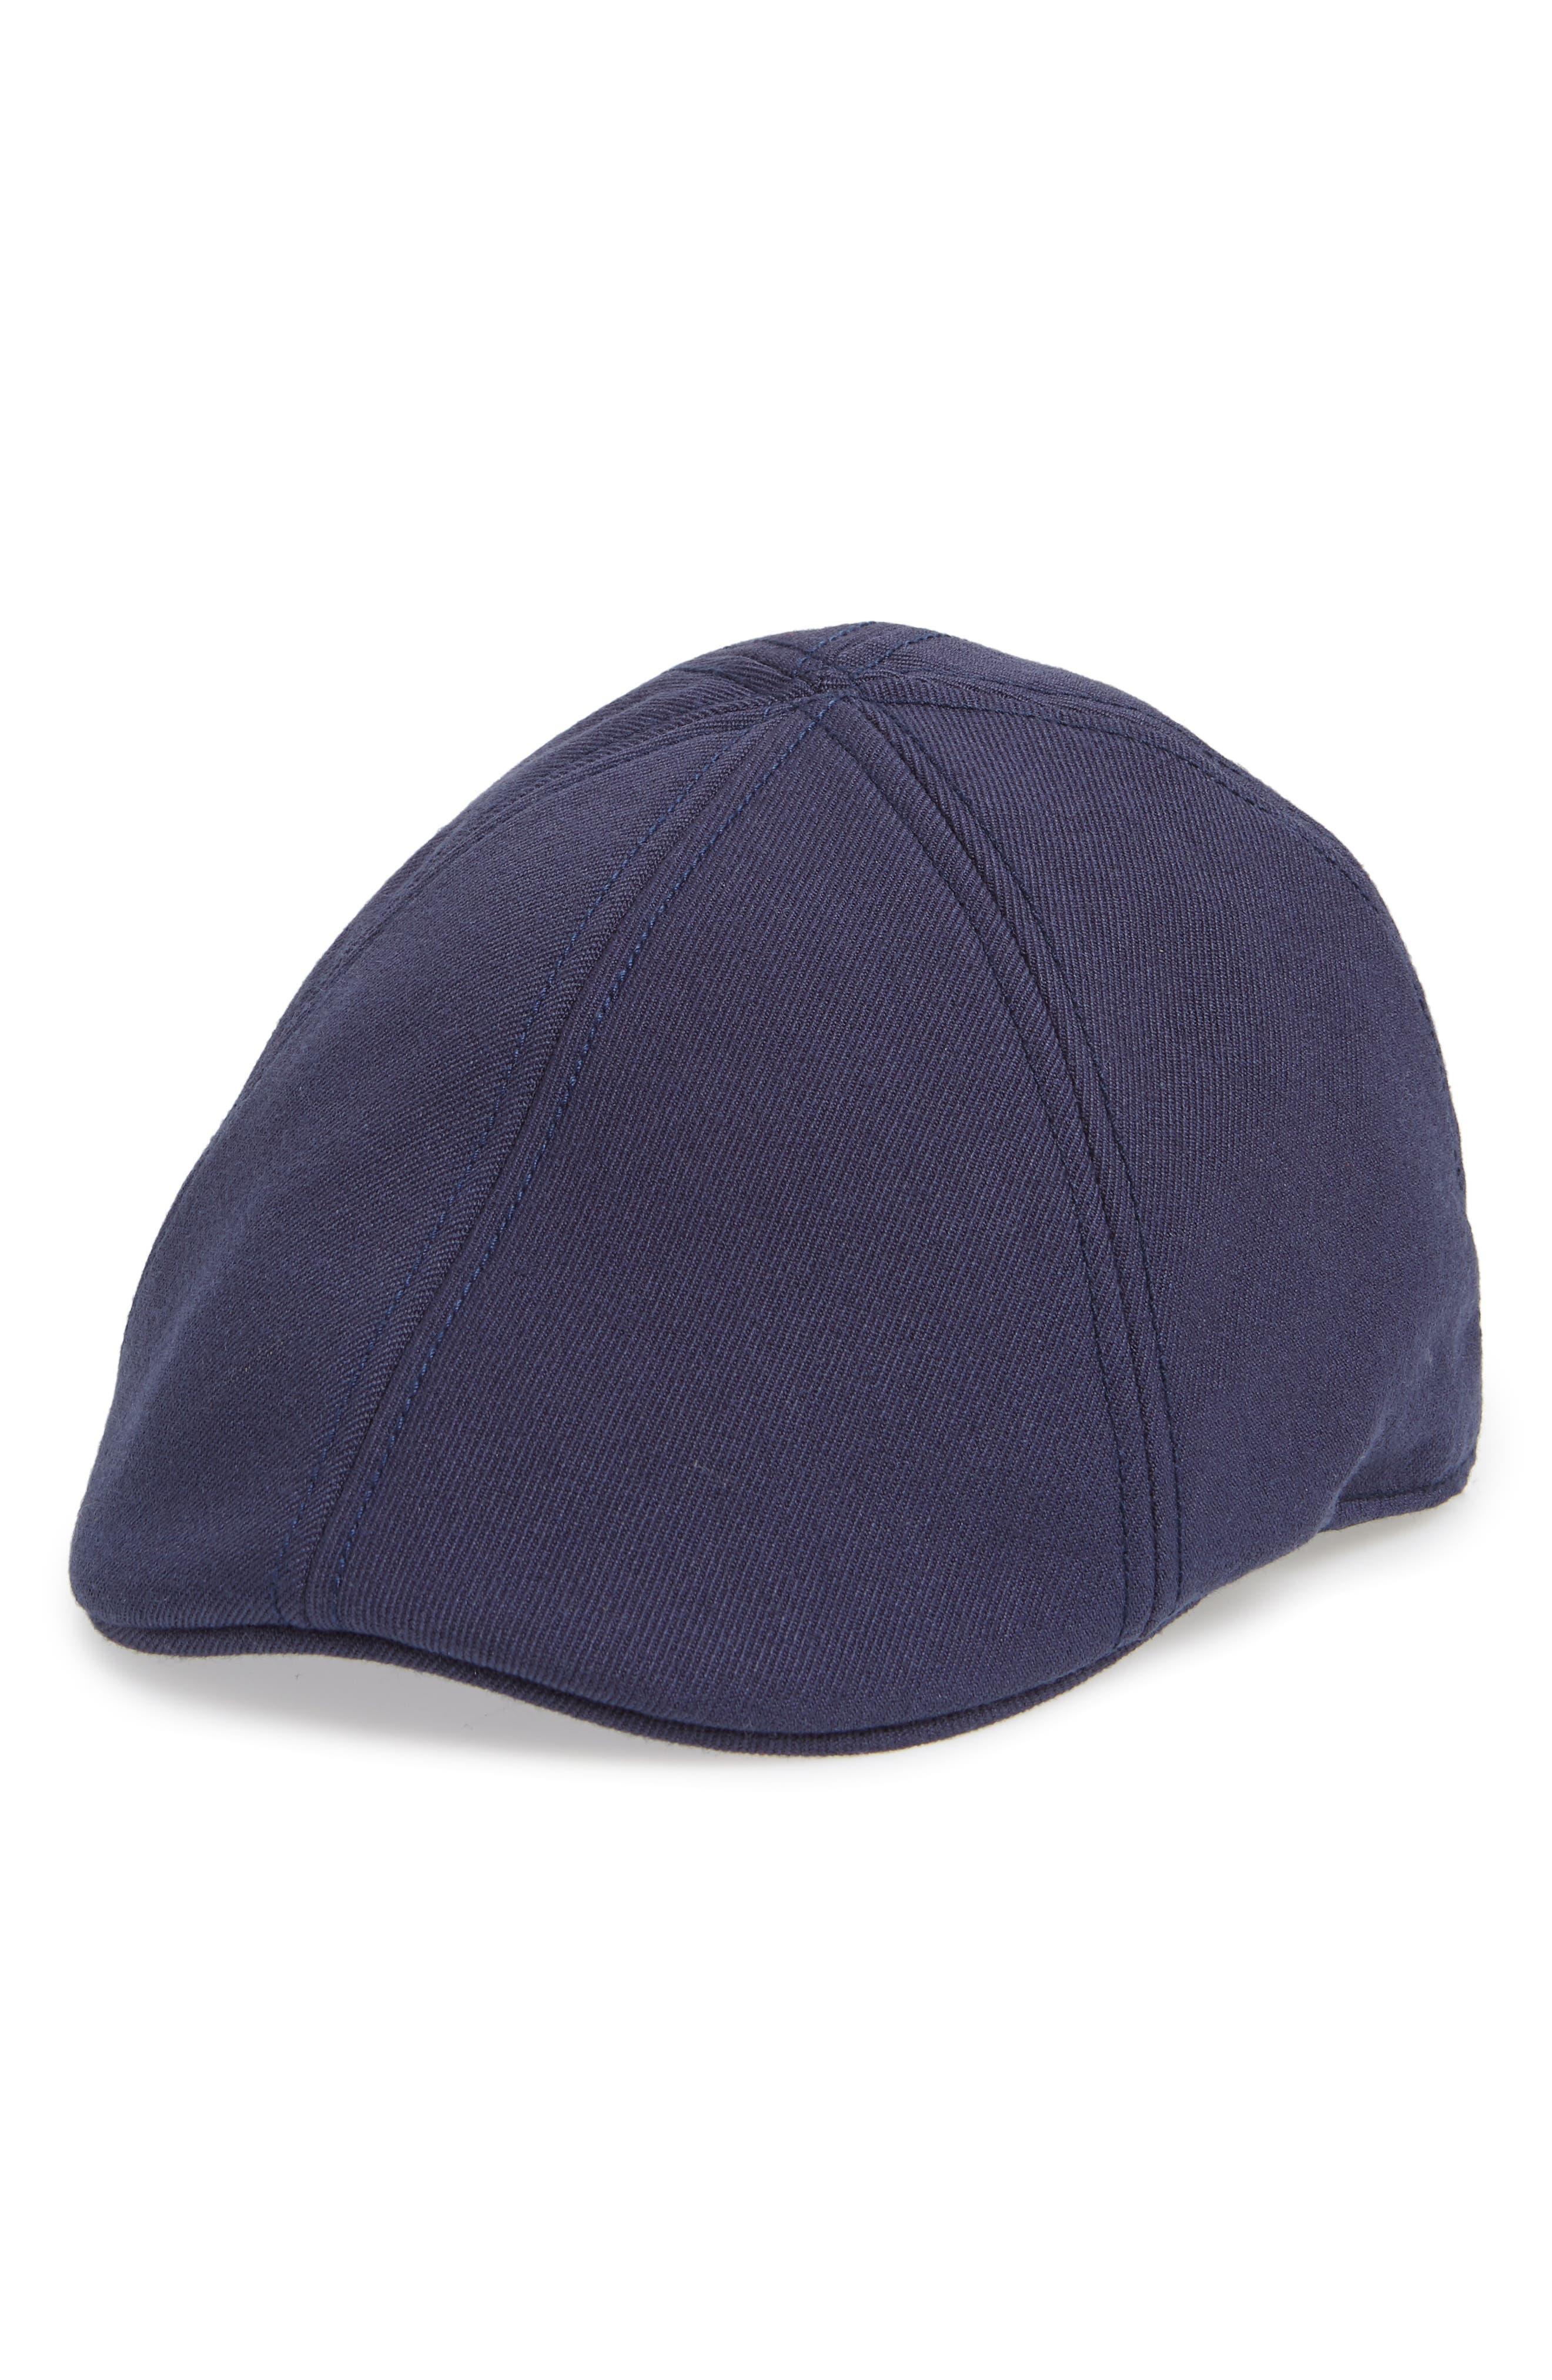 GOORIN BROS. Goorin Brothers Old Town Driving Cap, Main, color, BLUE